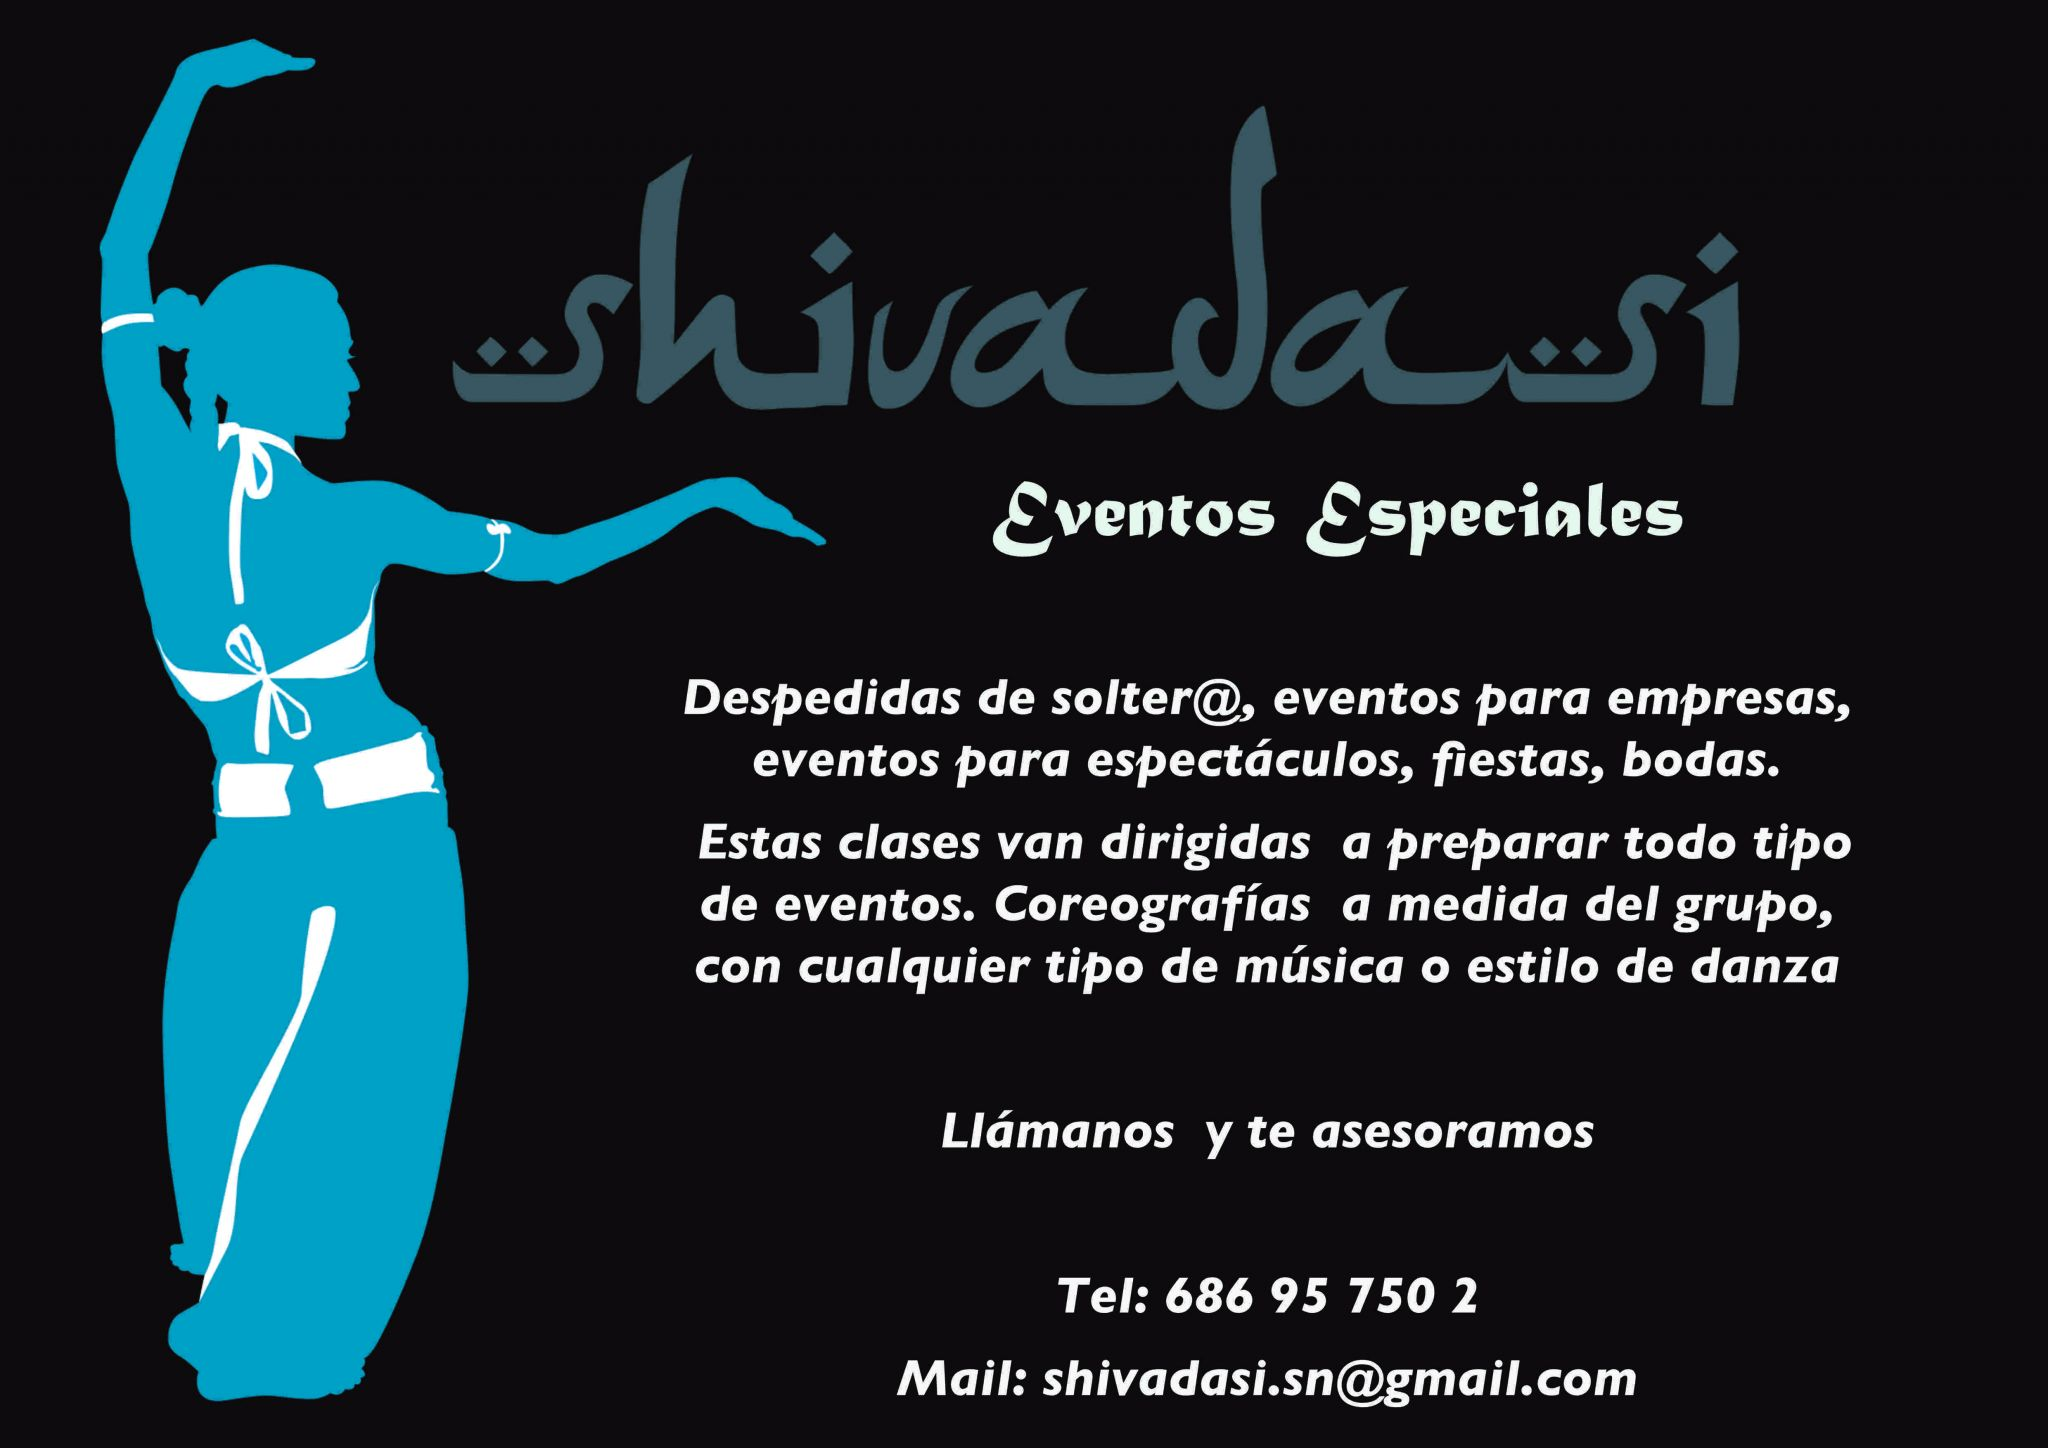 Shivadasi - Eventos Especiales - Las Tablas